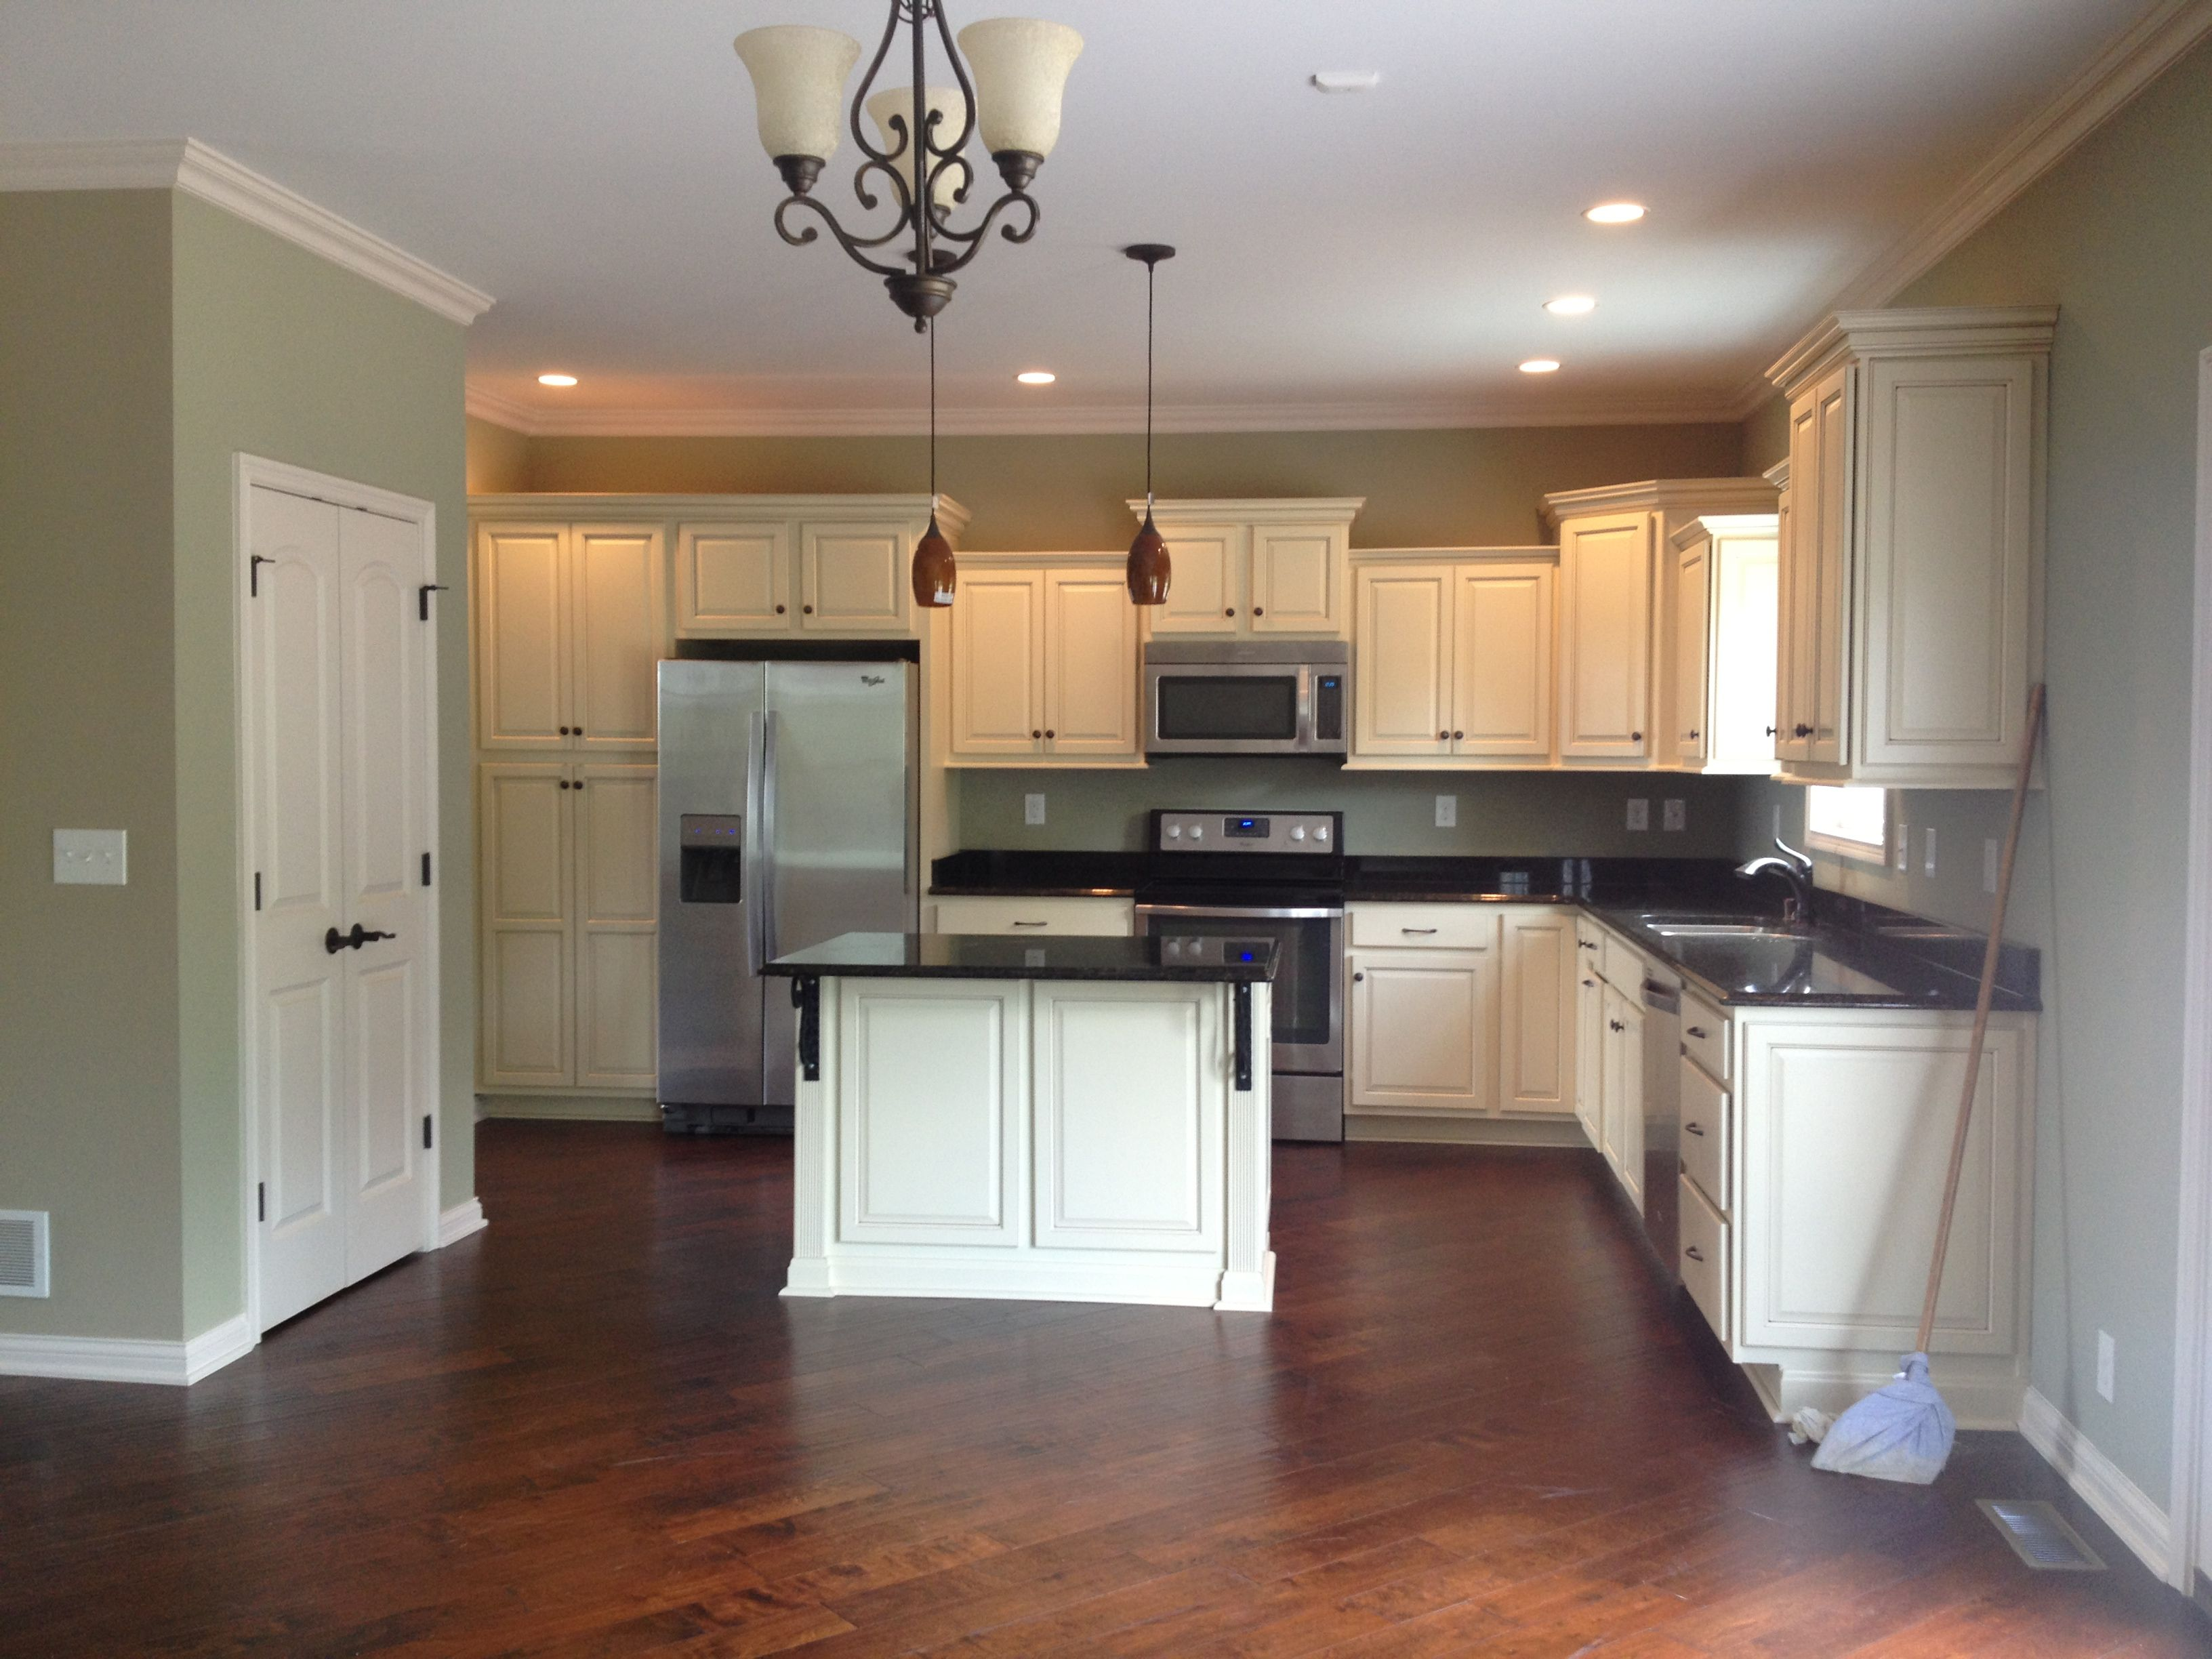 White cabinets w/black tops and dark wood floor. Green walls ...